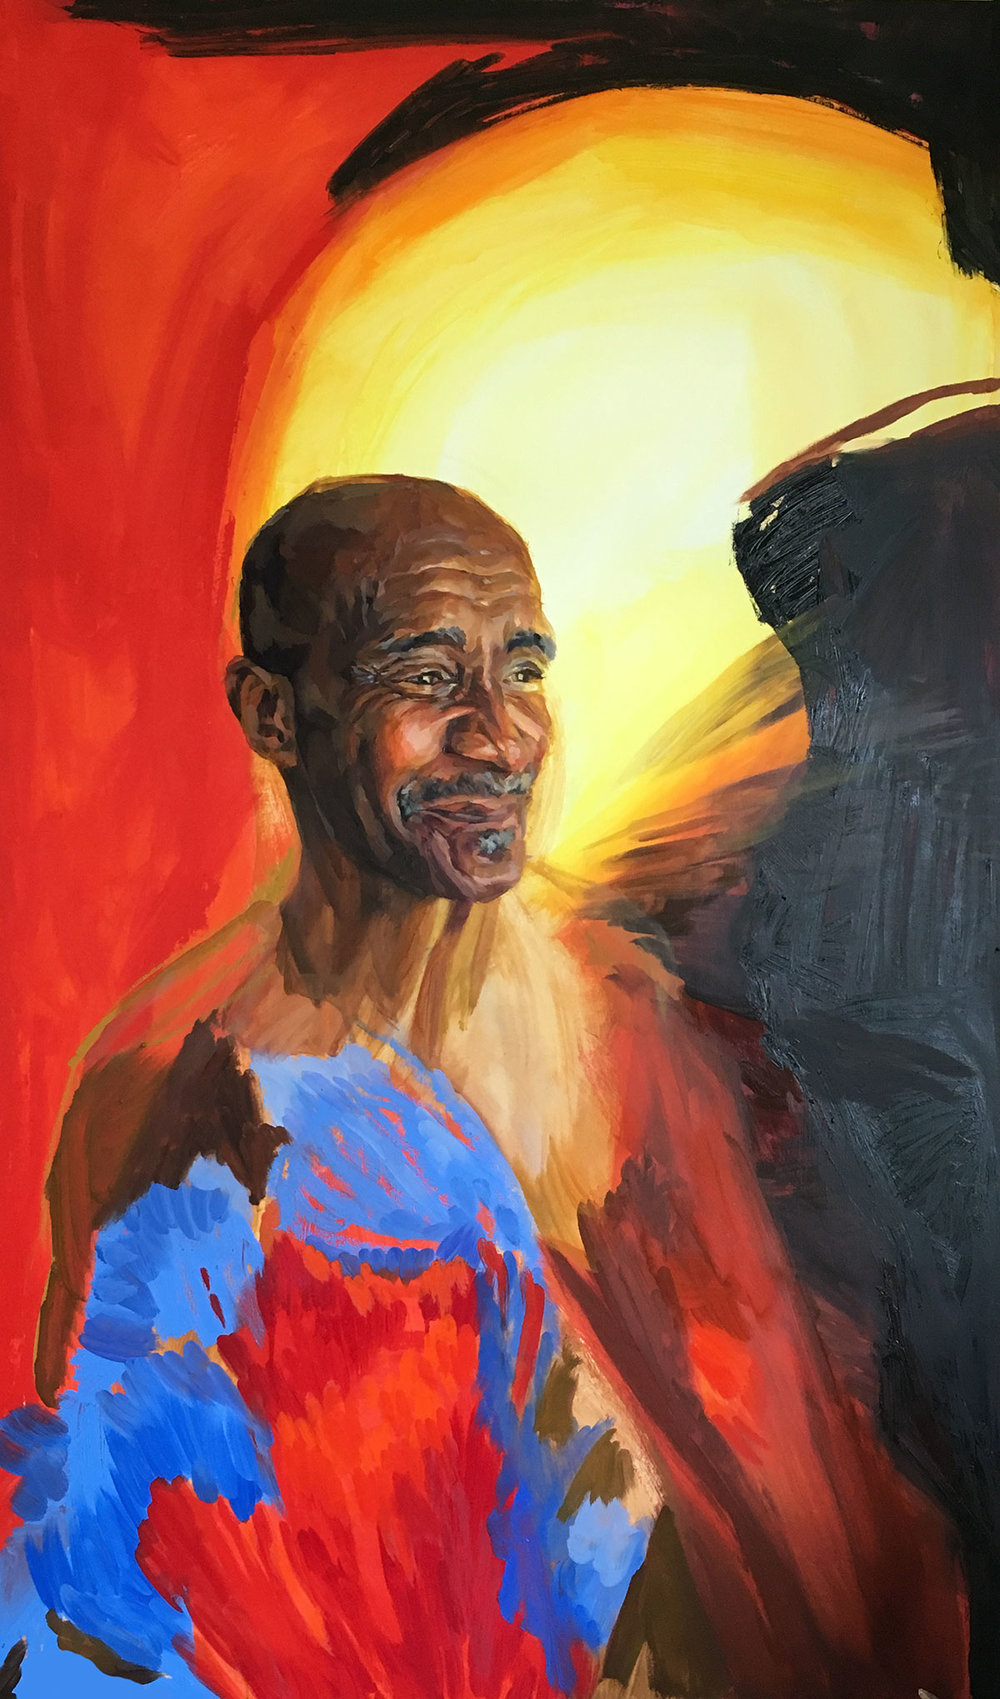 """Detail of St. Athanasius, Oil and Acrylic on Panel, 35""""x 60"""" by Melissa Carmon  The portrait of St. Athanasius, along with 11 others, will be on display at Bolt Gallery from Feb 1-28, 2019 in Downtown Fort Collins."""